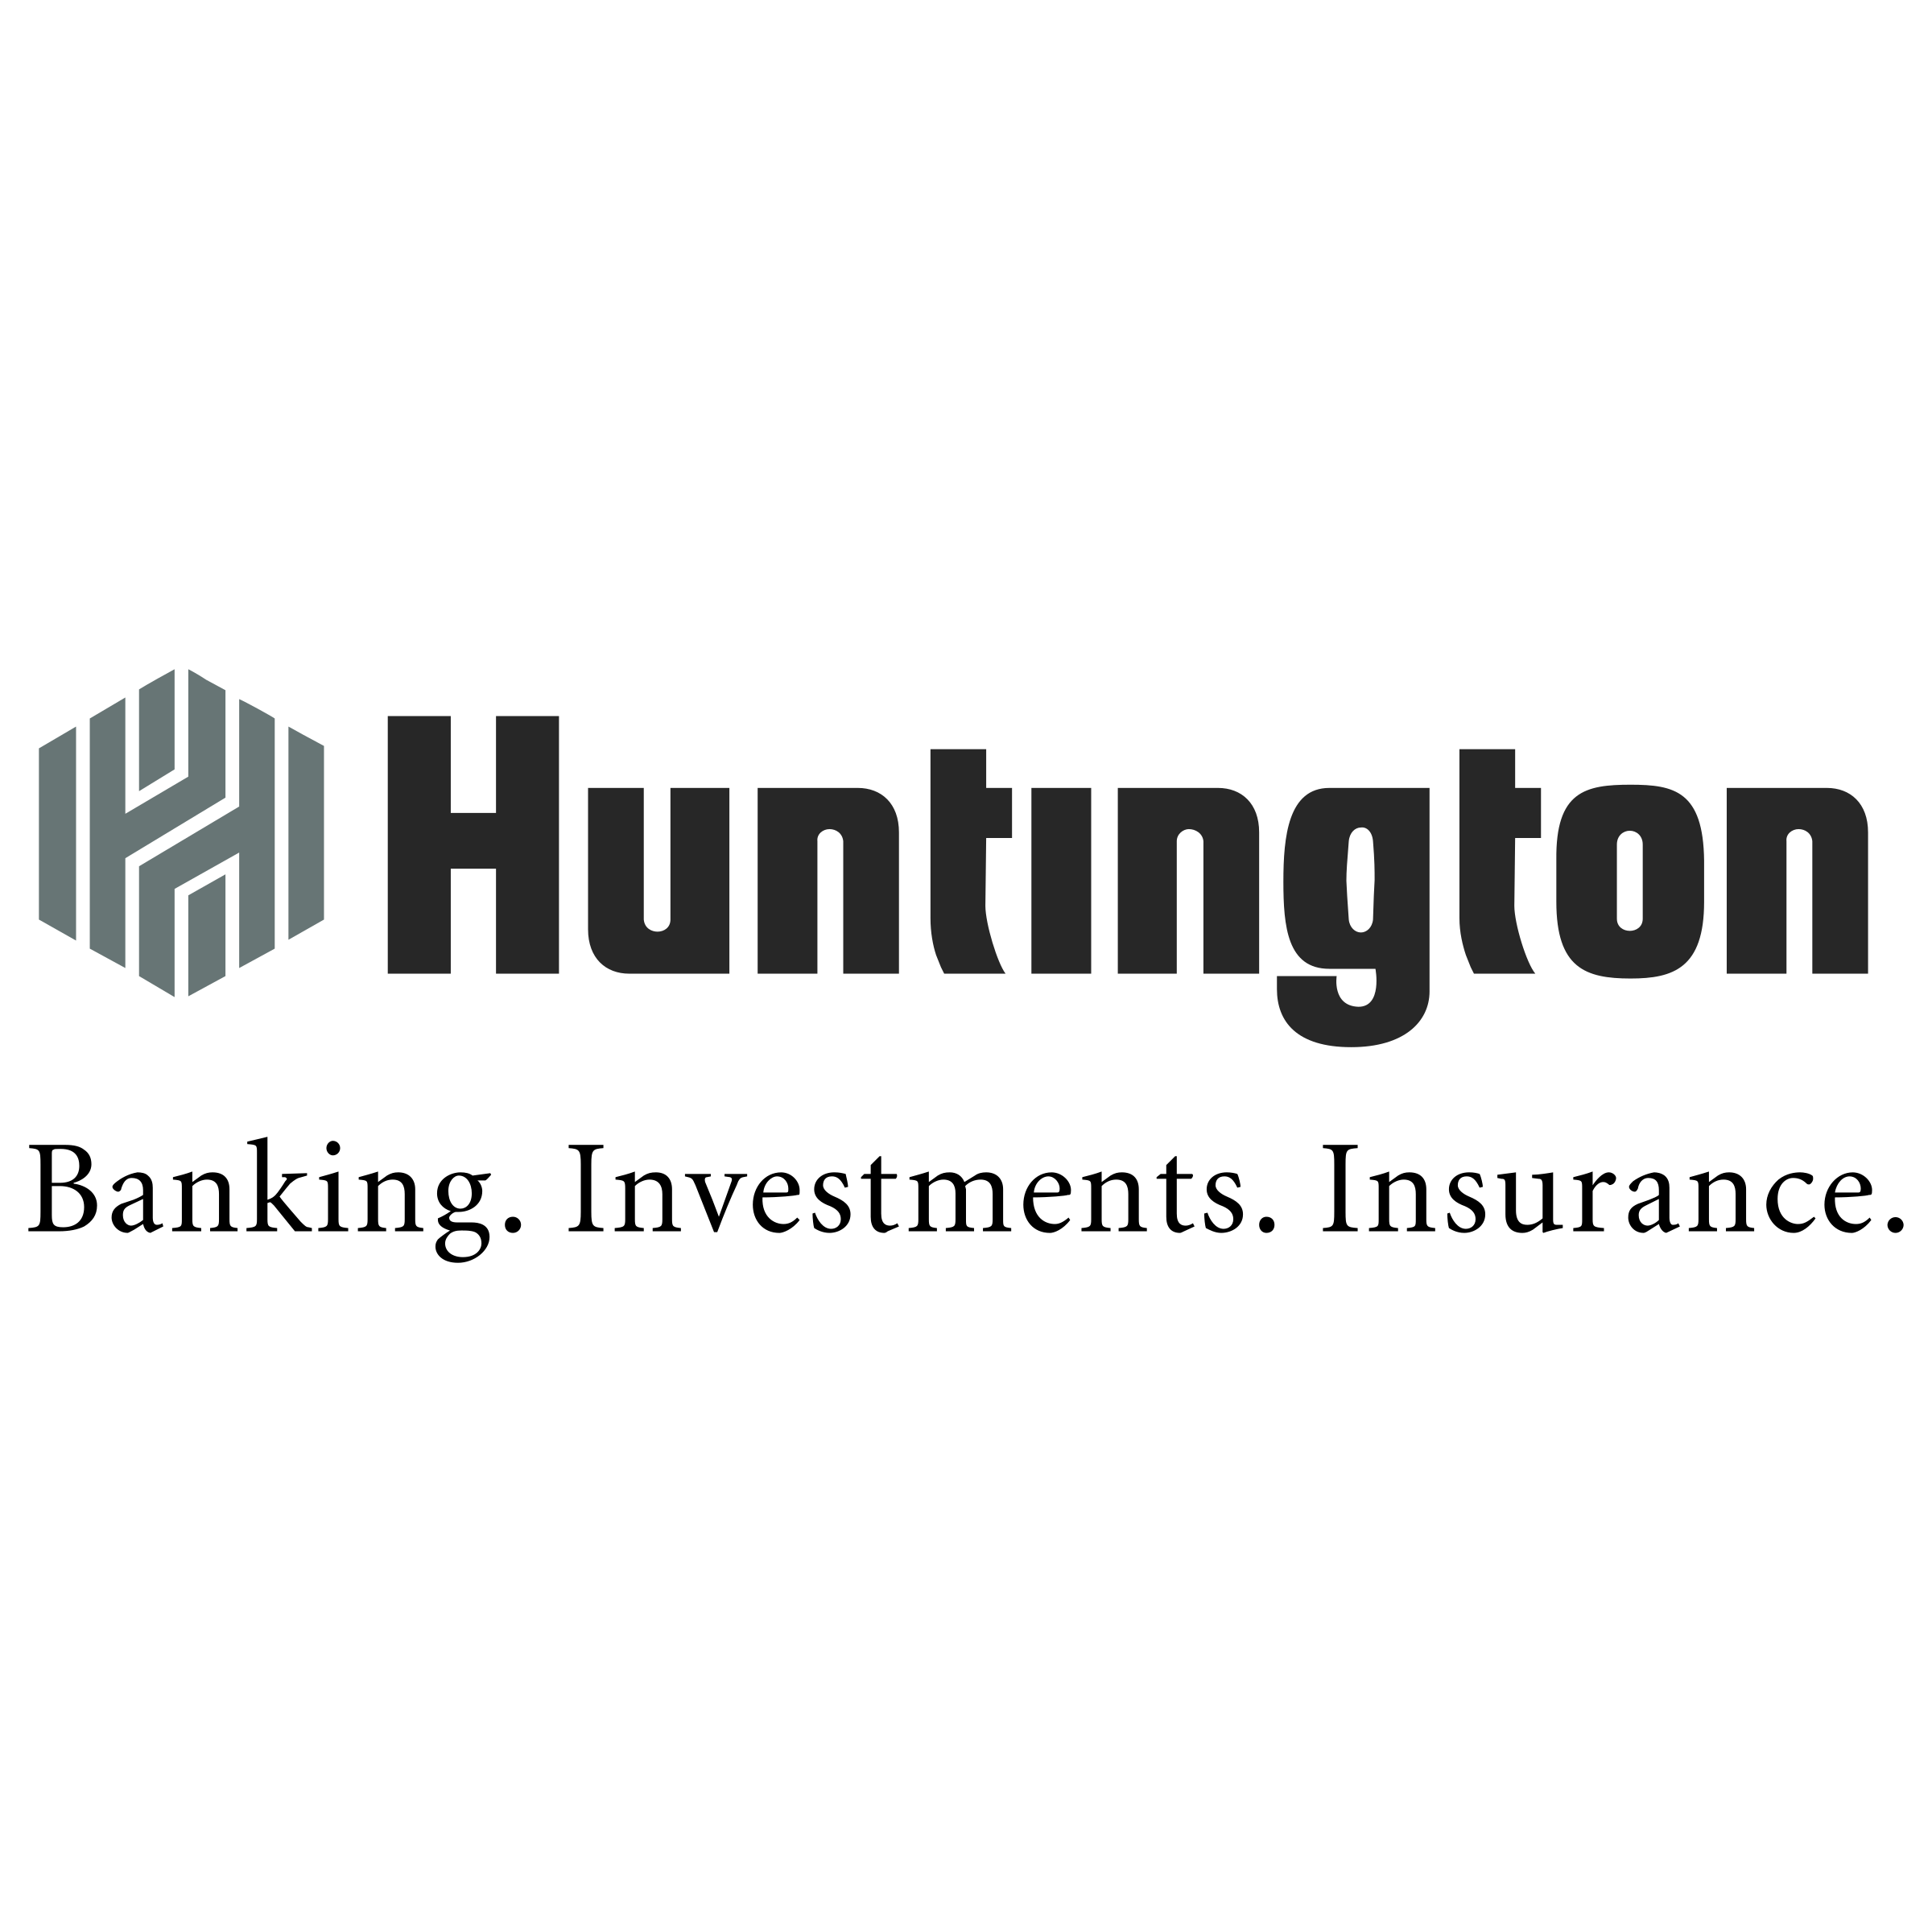 Huntington Logo PNG Transparent & SVG Vector.